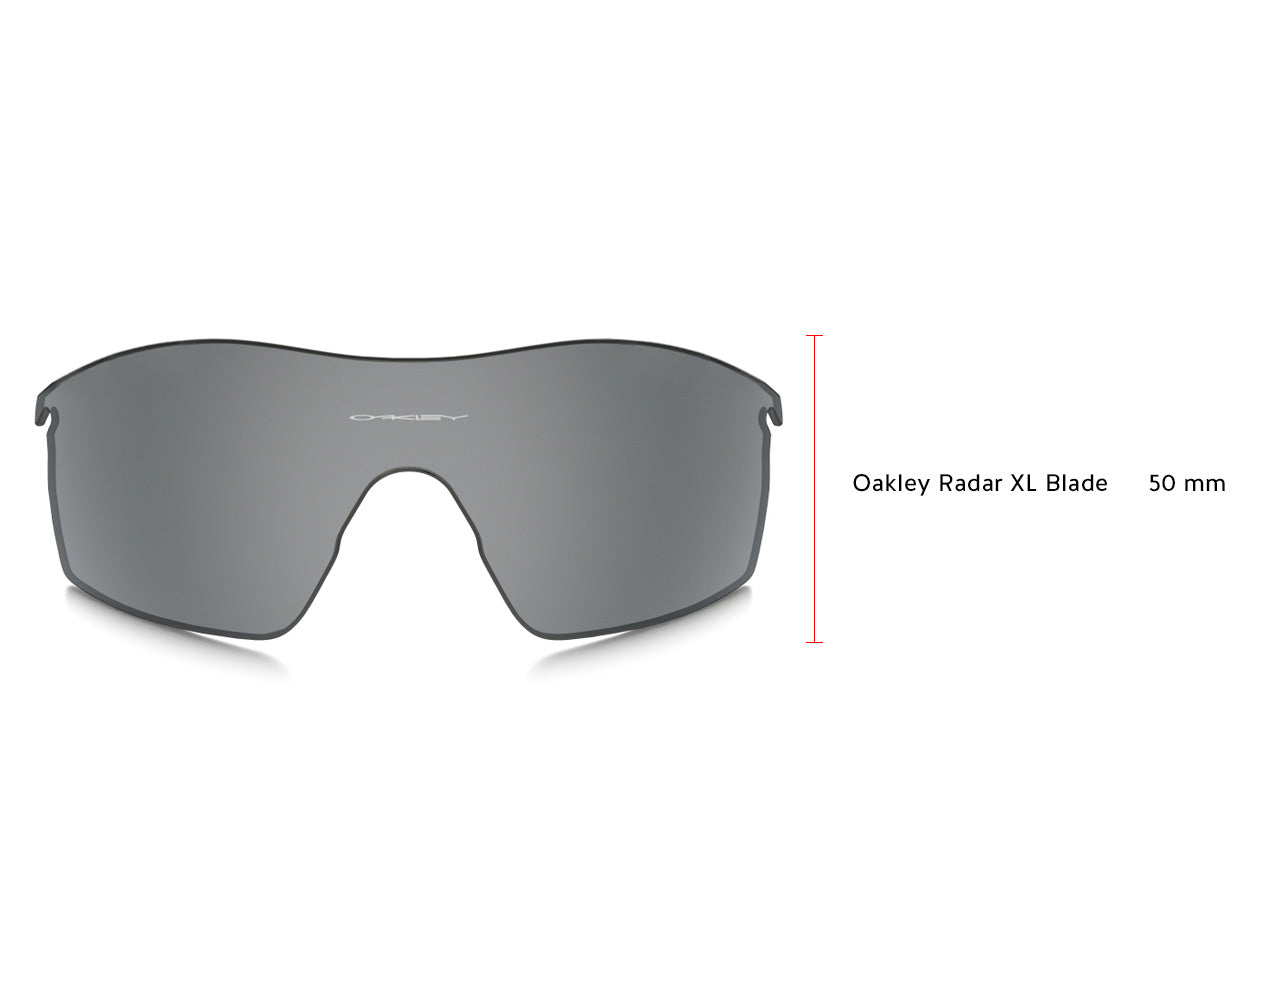 Oakley Radar XL Blade